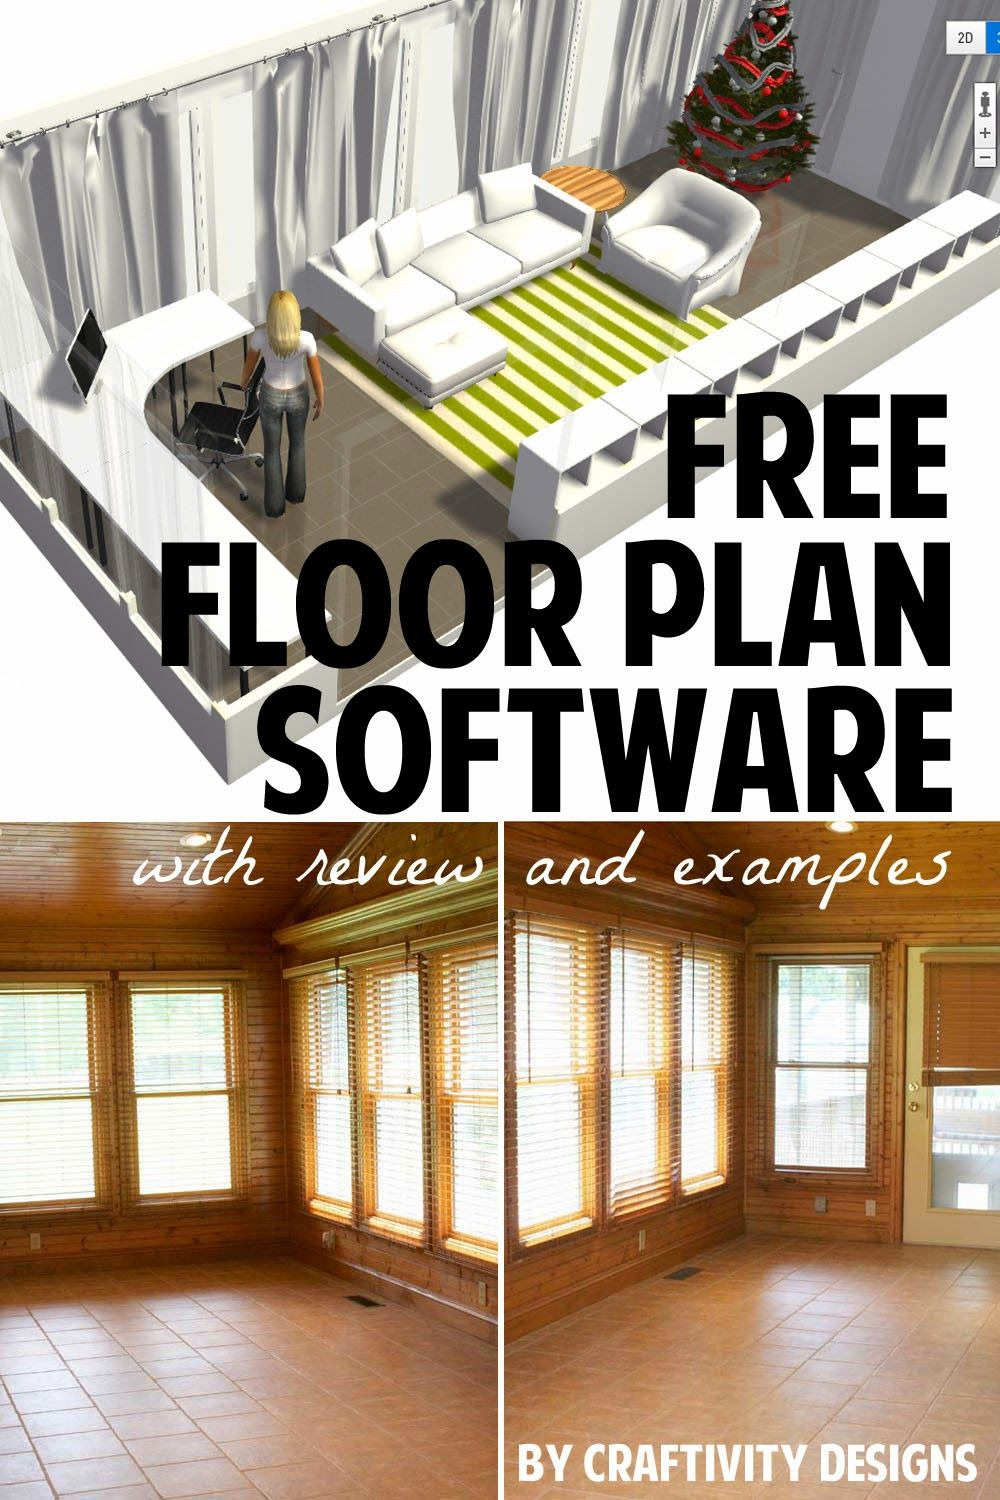 House Plan software Review Elegant Quick Easy and Free Floor Plan software Projects